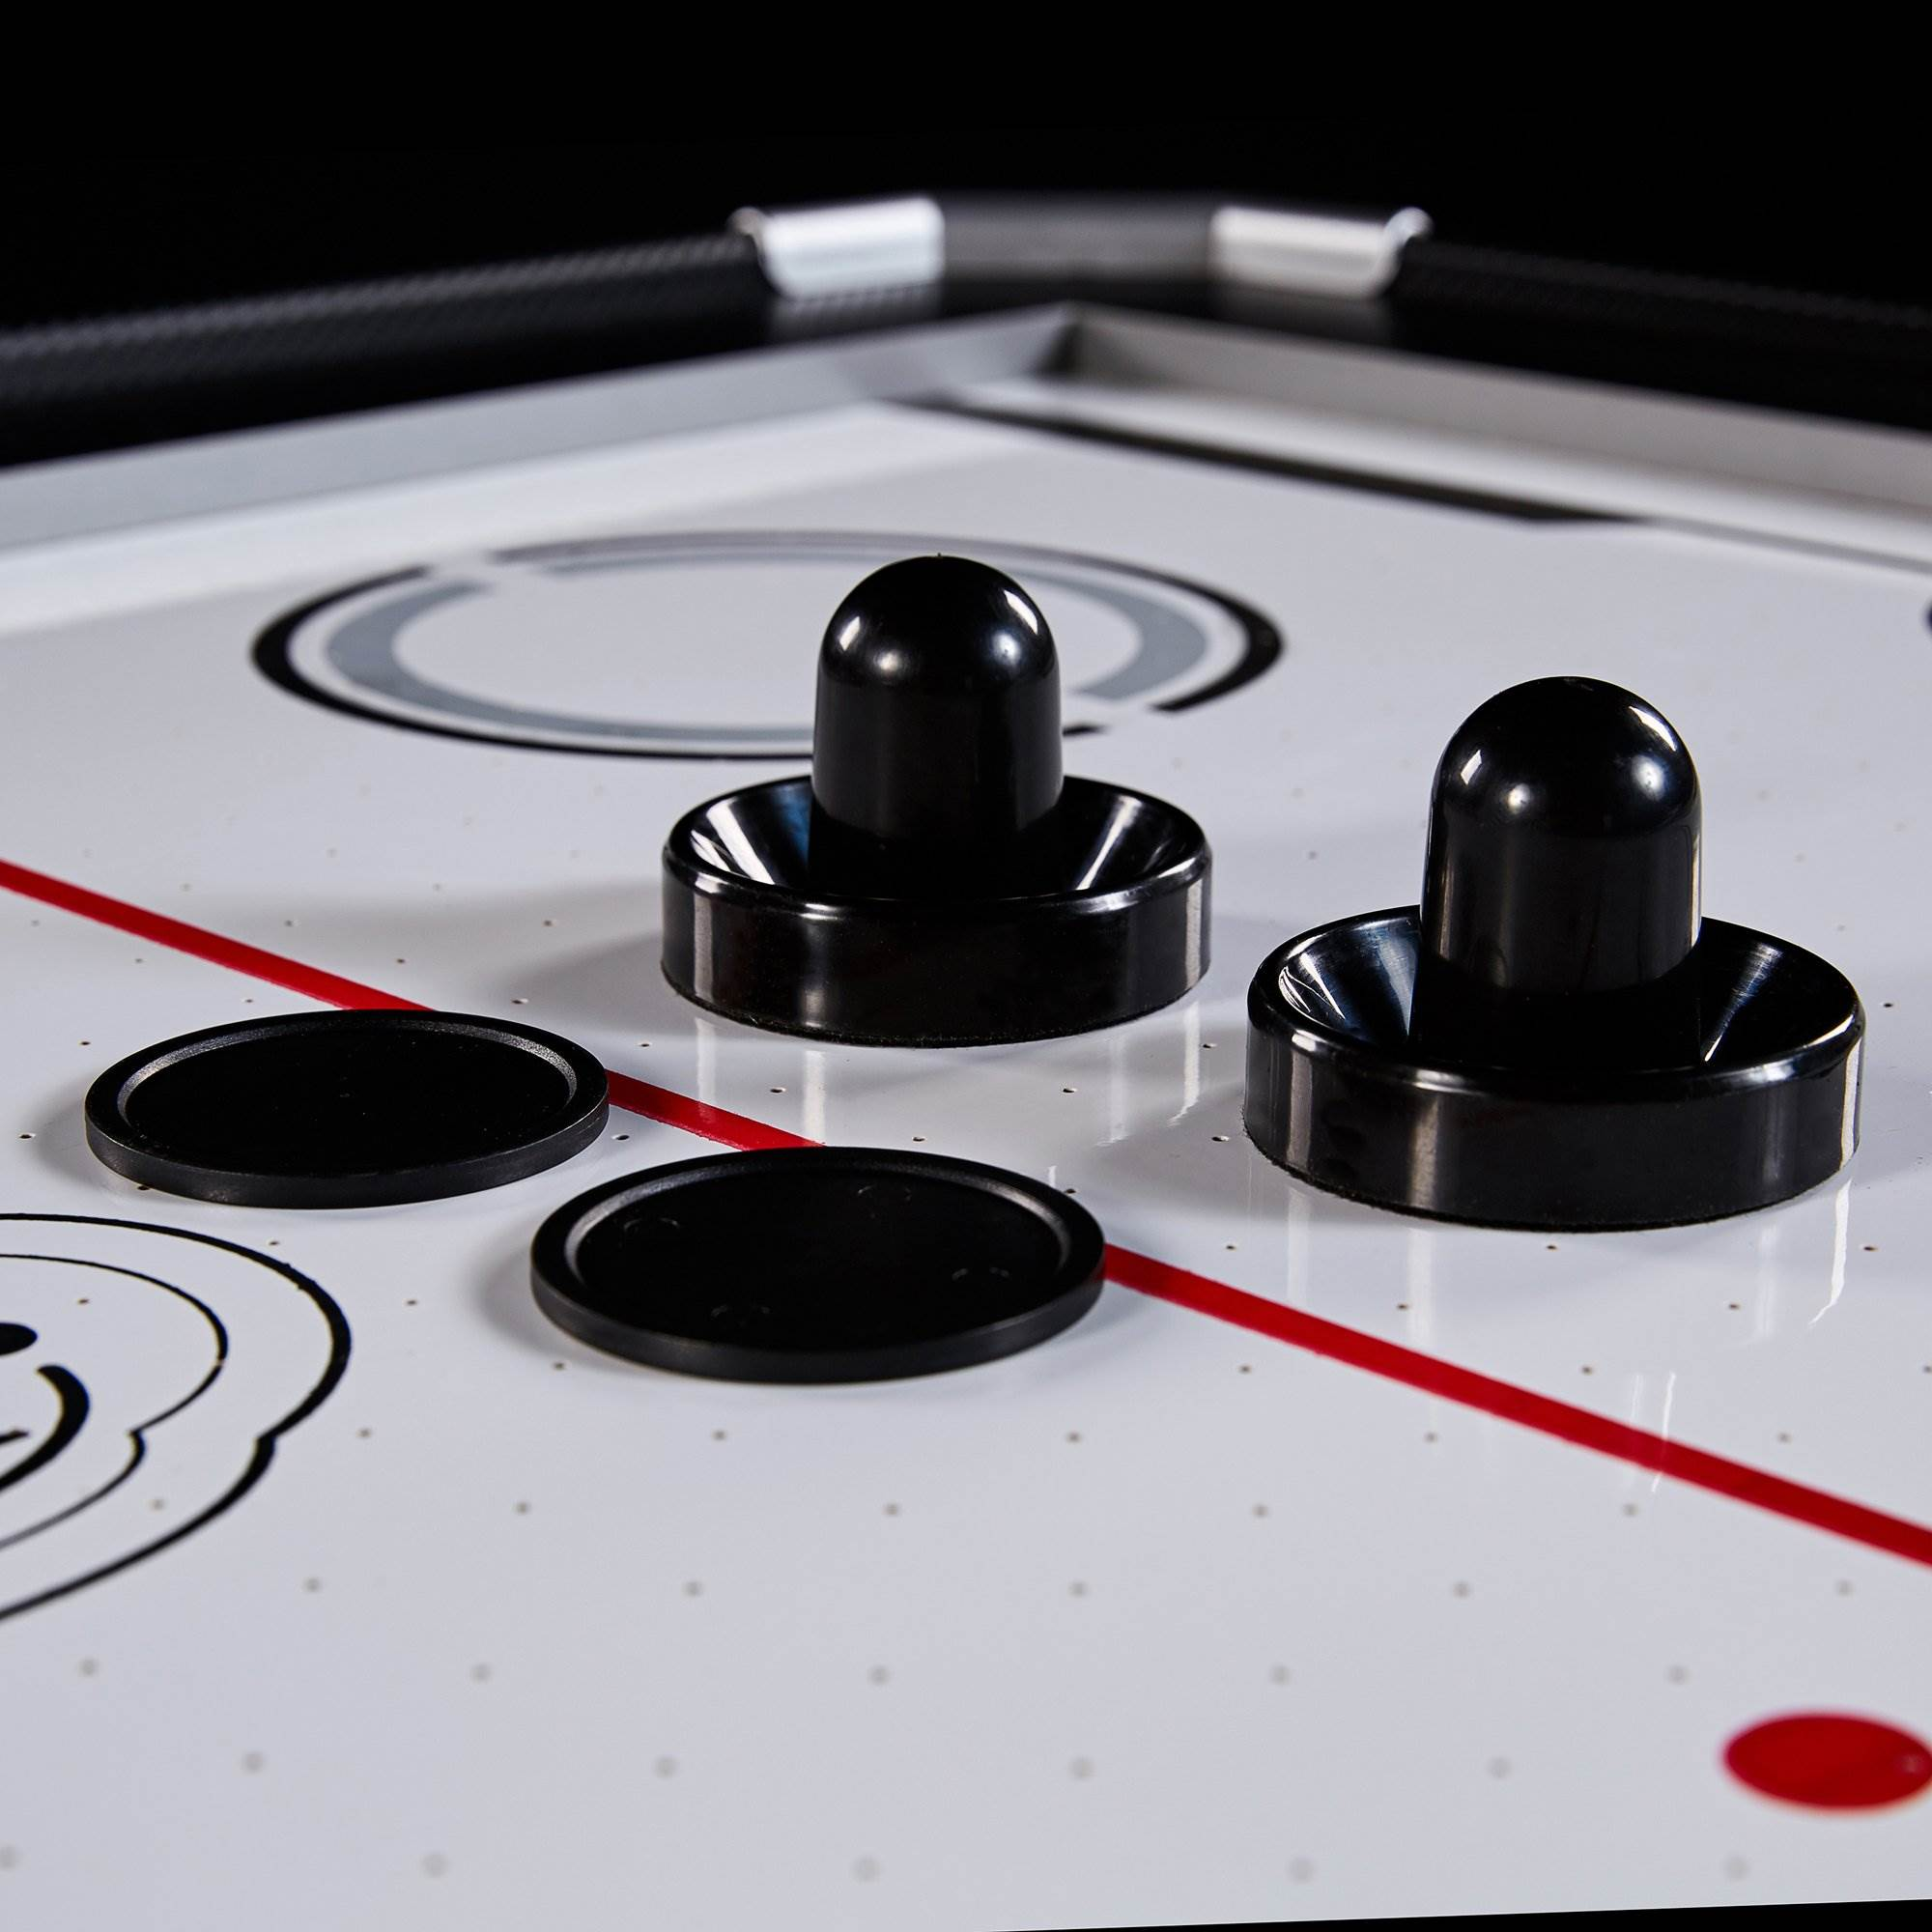 Lancaster AWH066/_018P 66 inch Air Hockey Table with Electronic Scoring for sale online